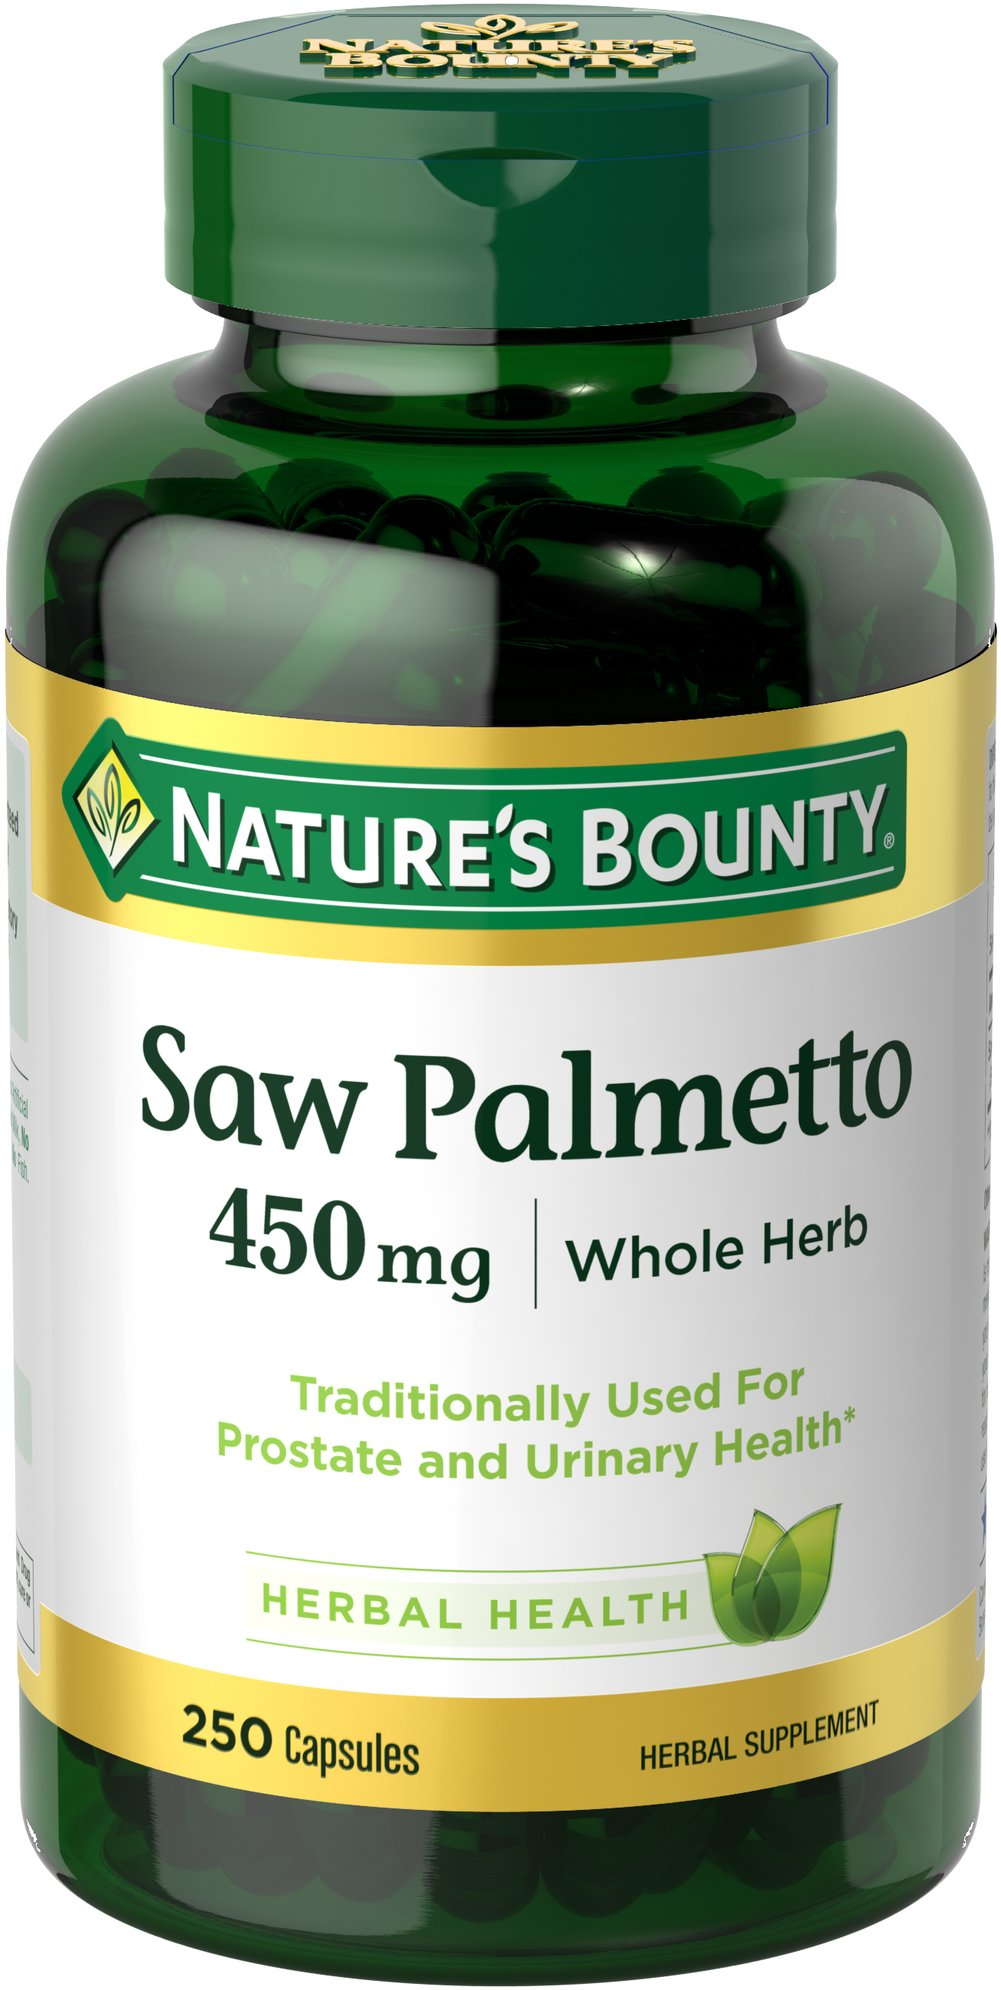 Nature's Bounty® Saw Palmetto 450 mg